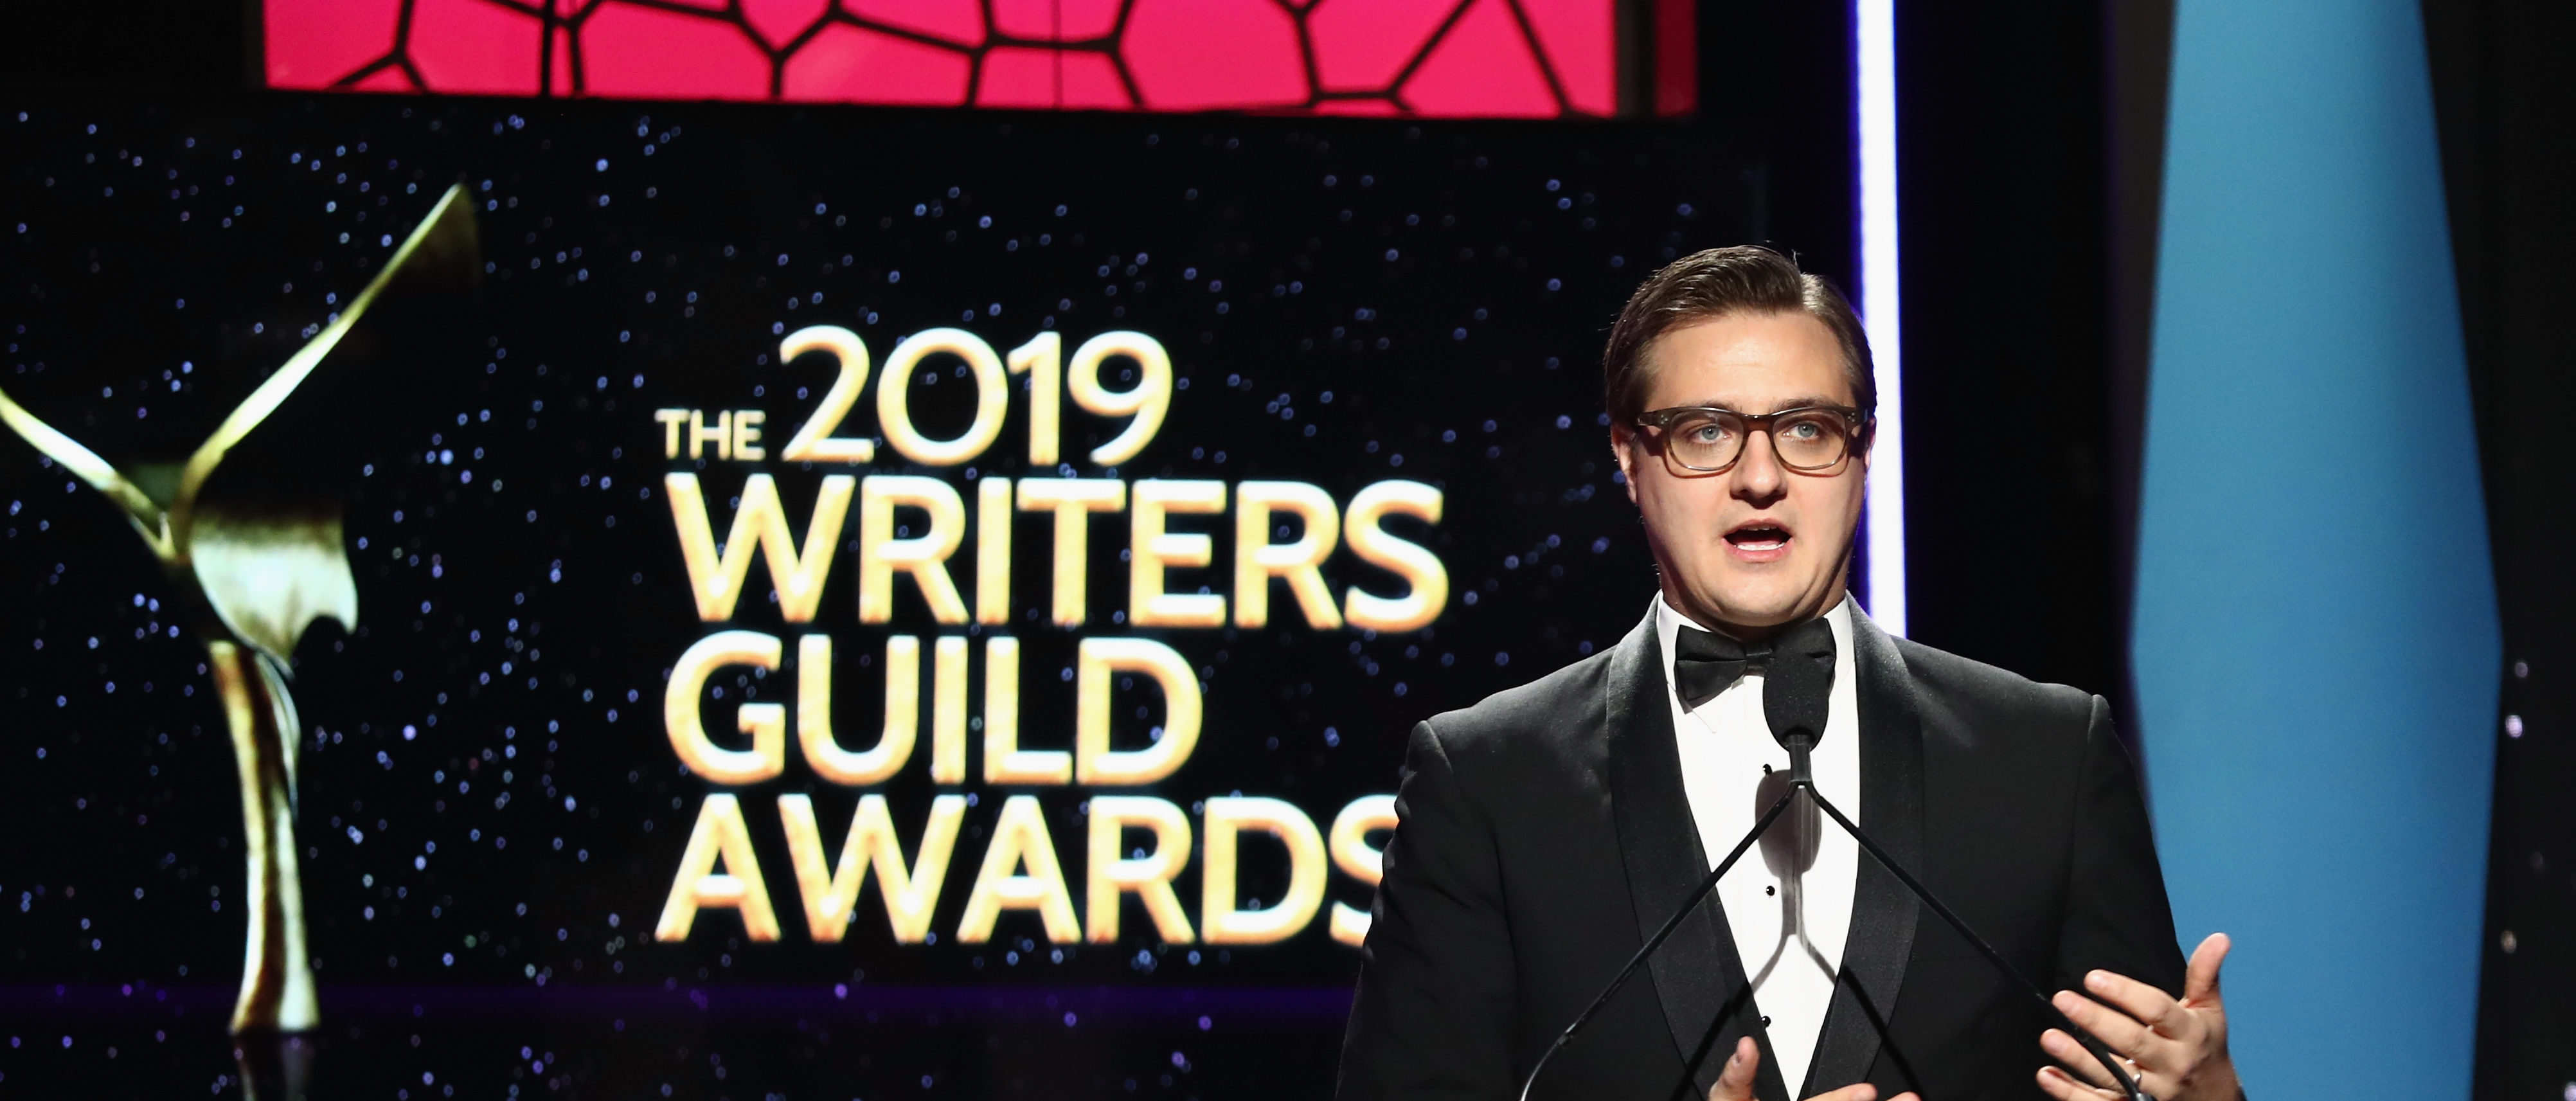 BEVERLY HILLS, CA - FEBRUARY 17: Chris Hayes speaks during the 2019 Writers Guild Awards Beverly Hills, California. (Photo by Rich Fury/Getty Images for WGAw)